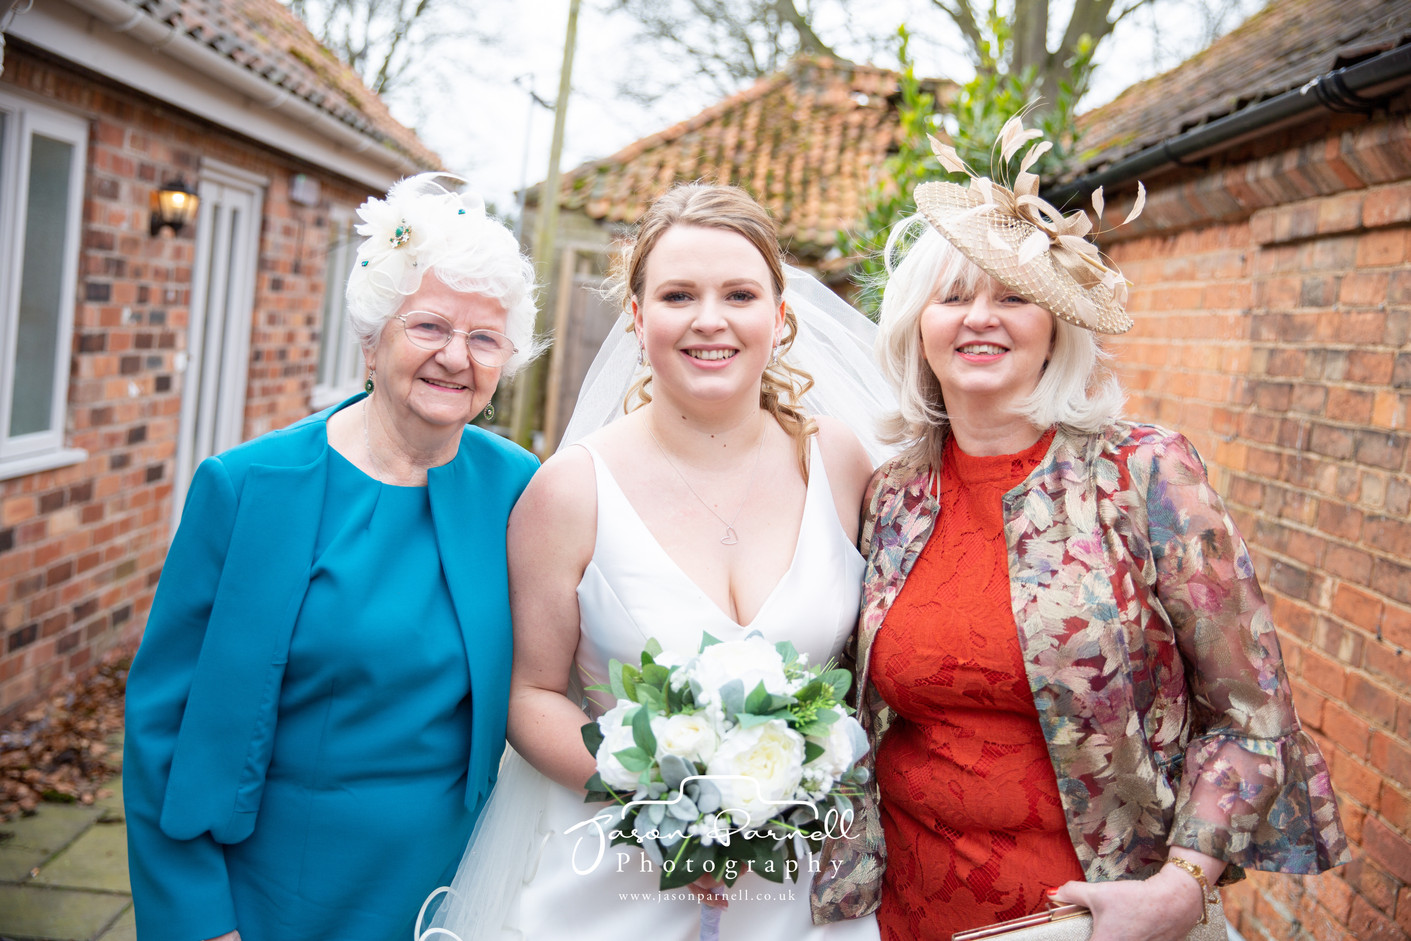 Samantha & Daniels Wedding